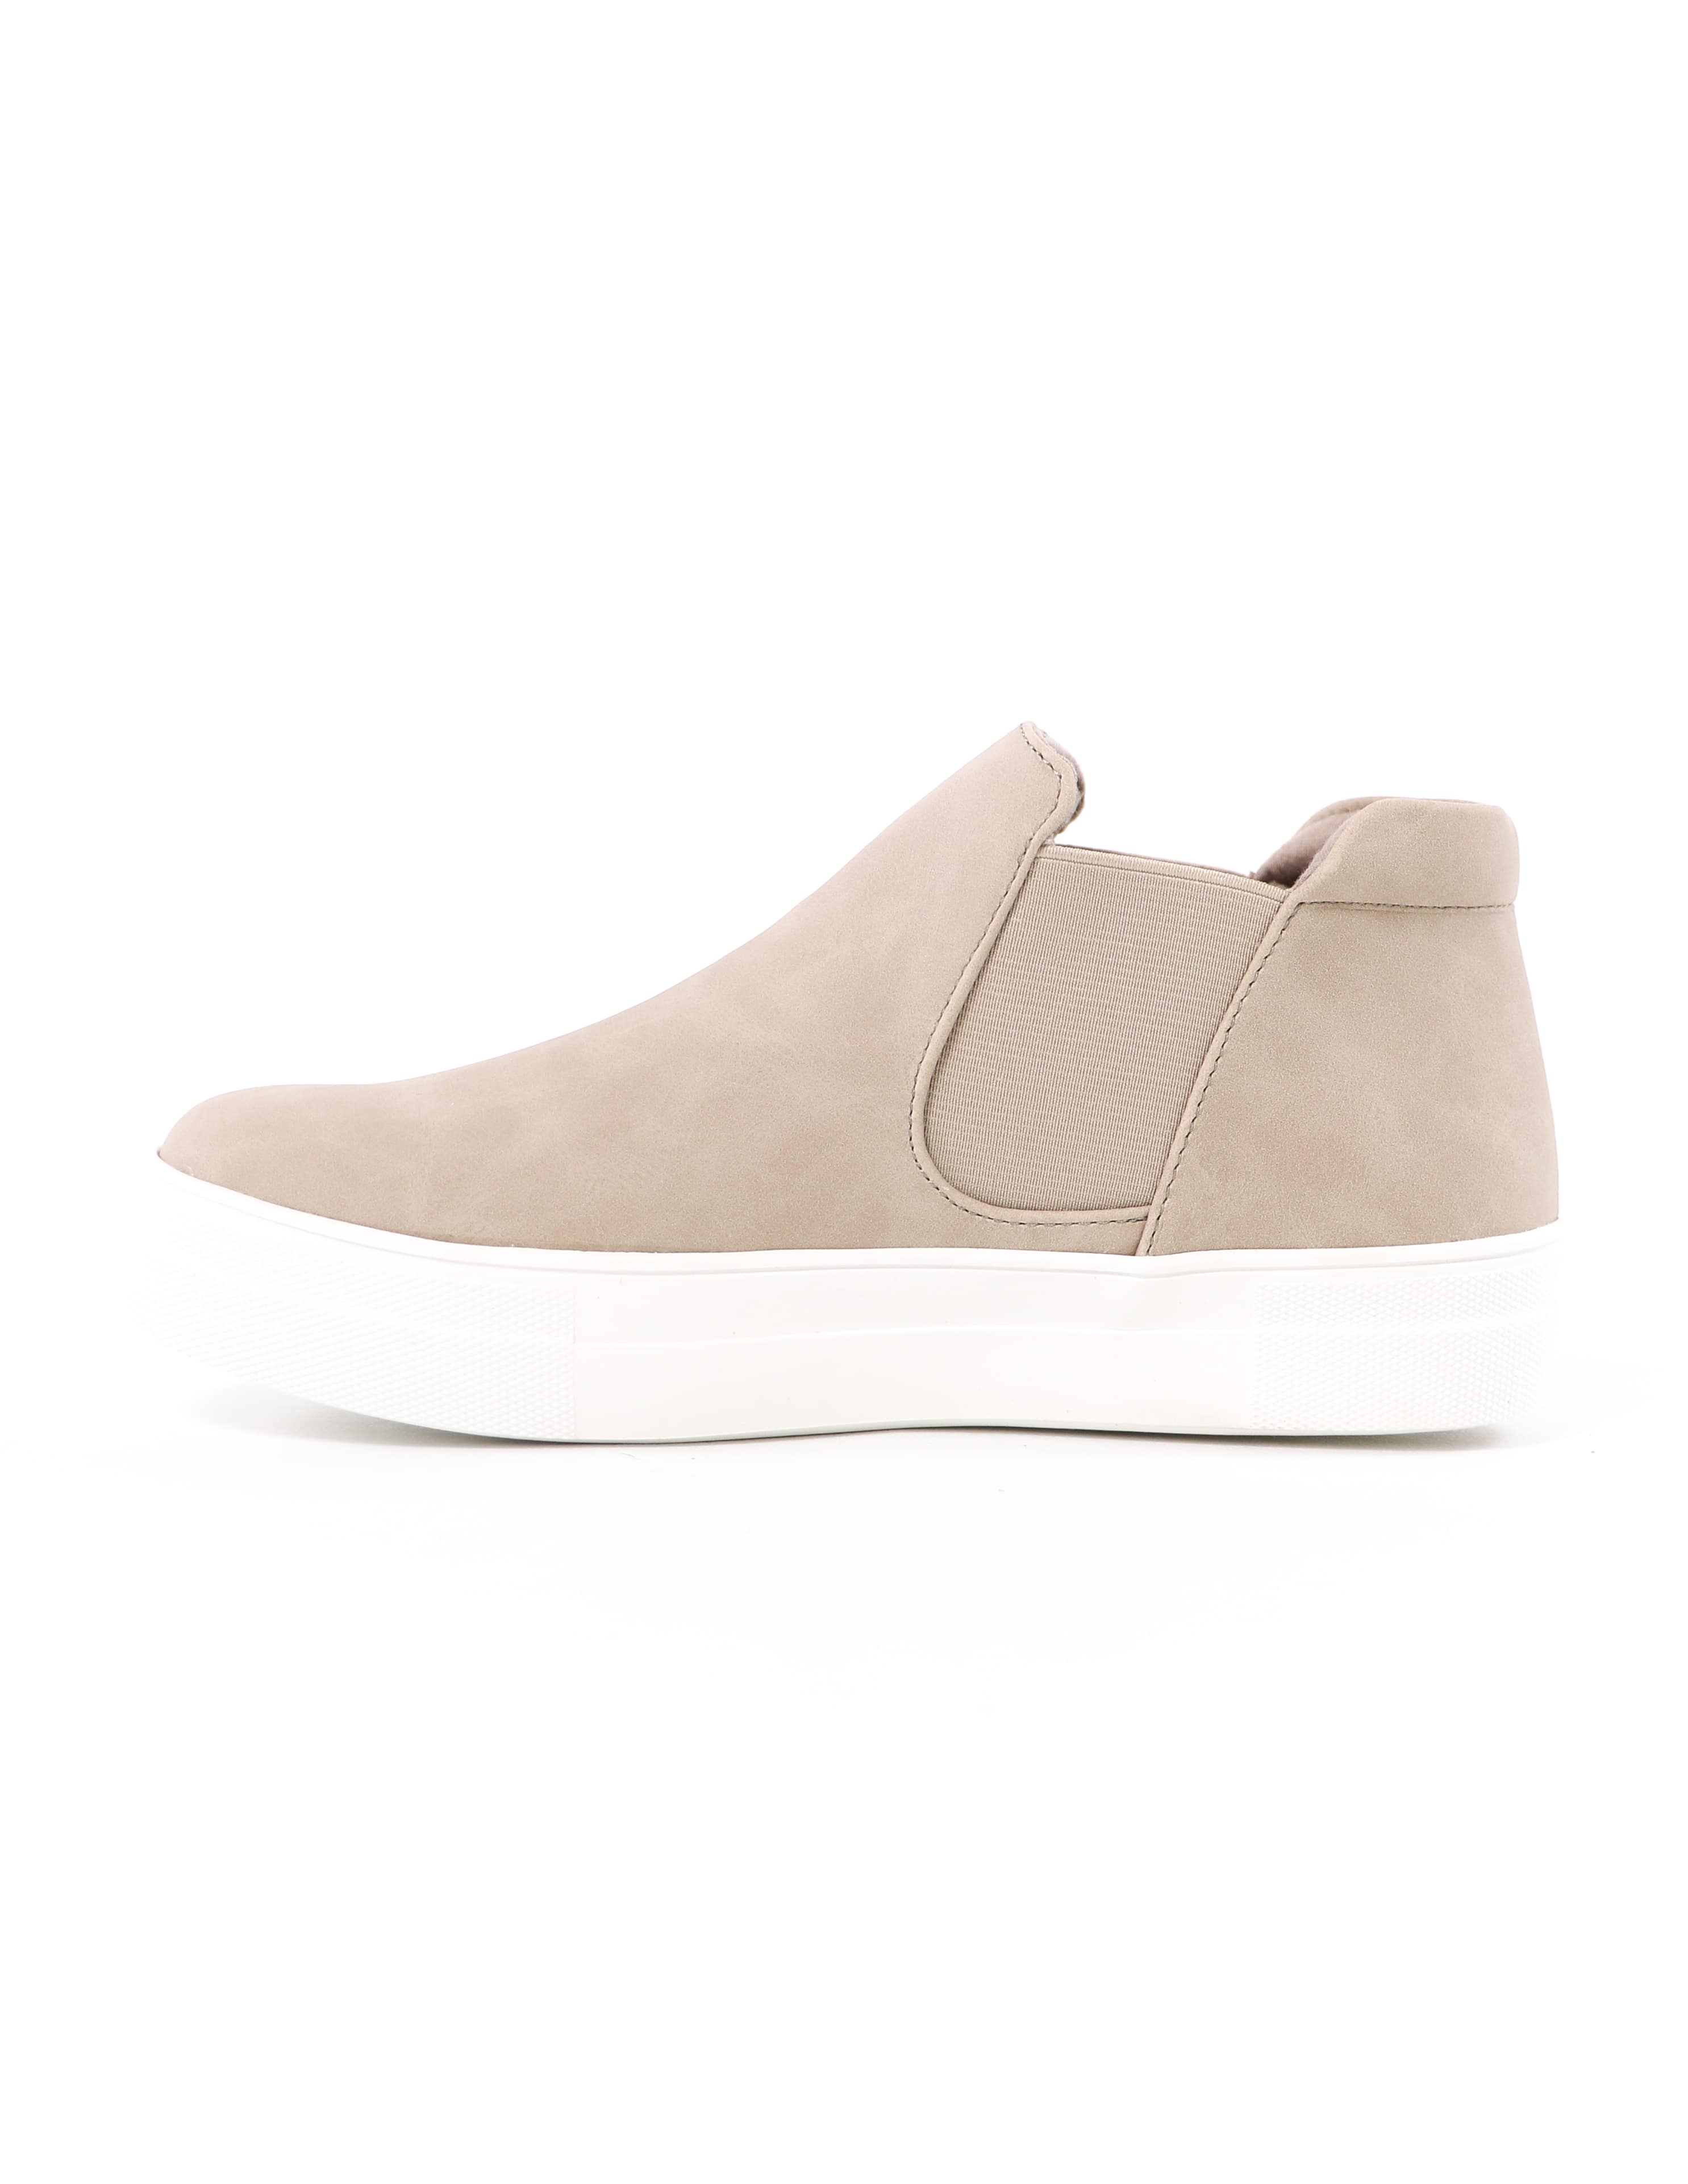 sand now or never soda high top platform sneaker with white rubber sole - elle bleu shoes